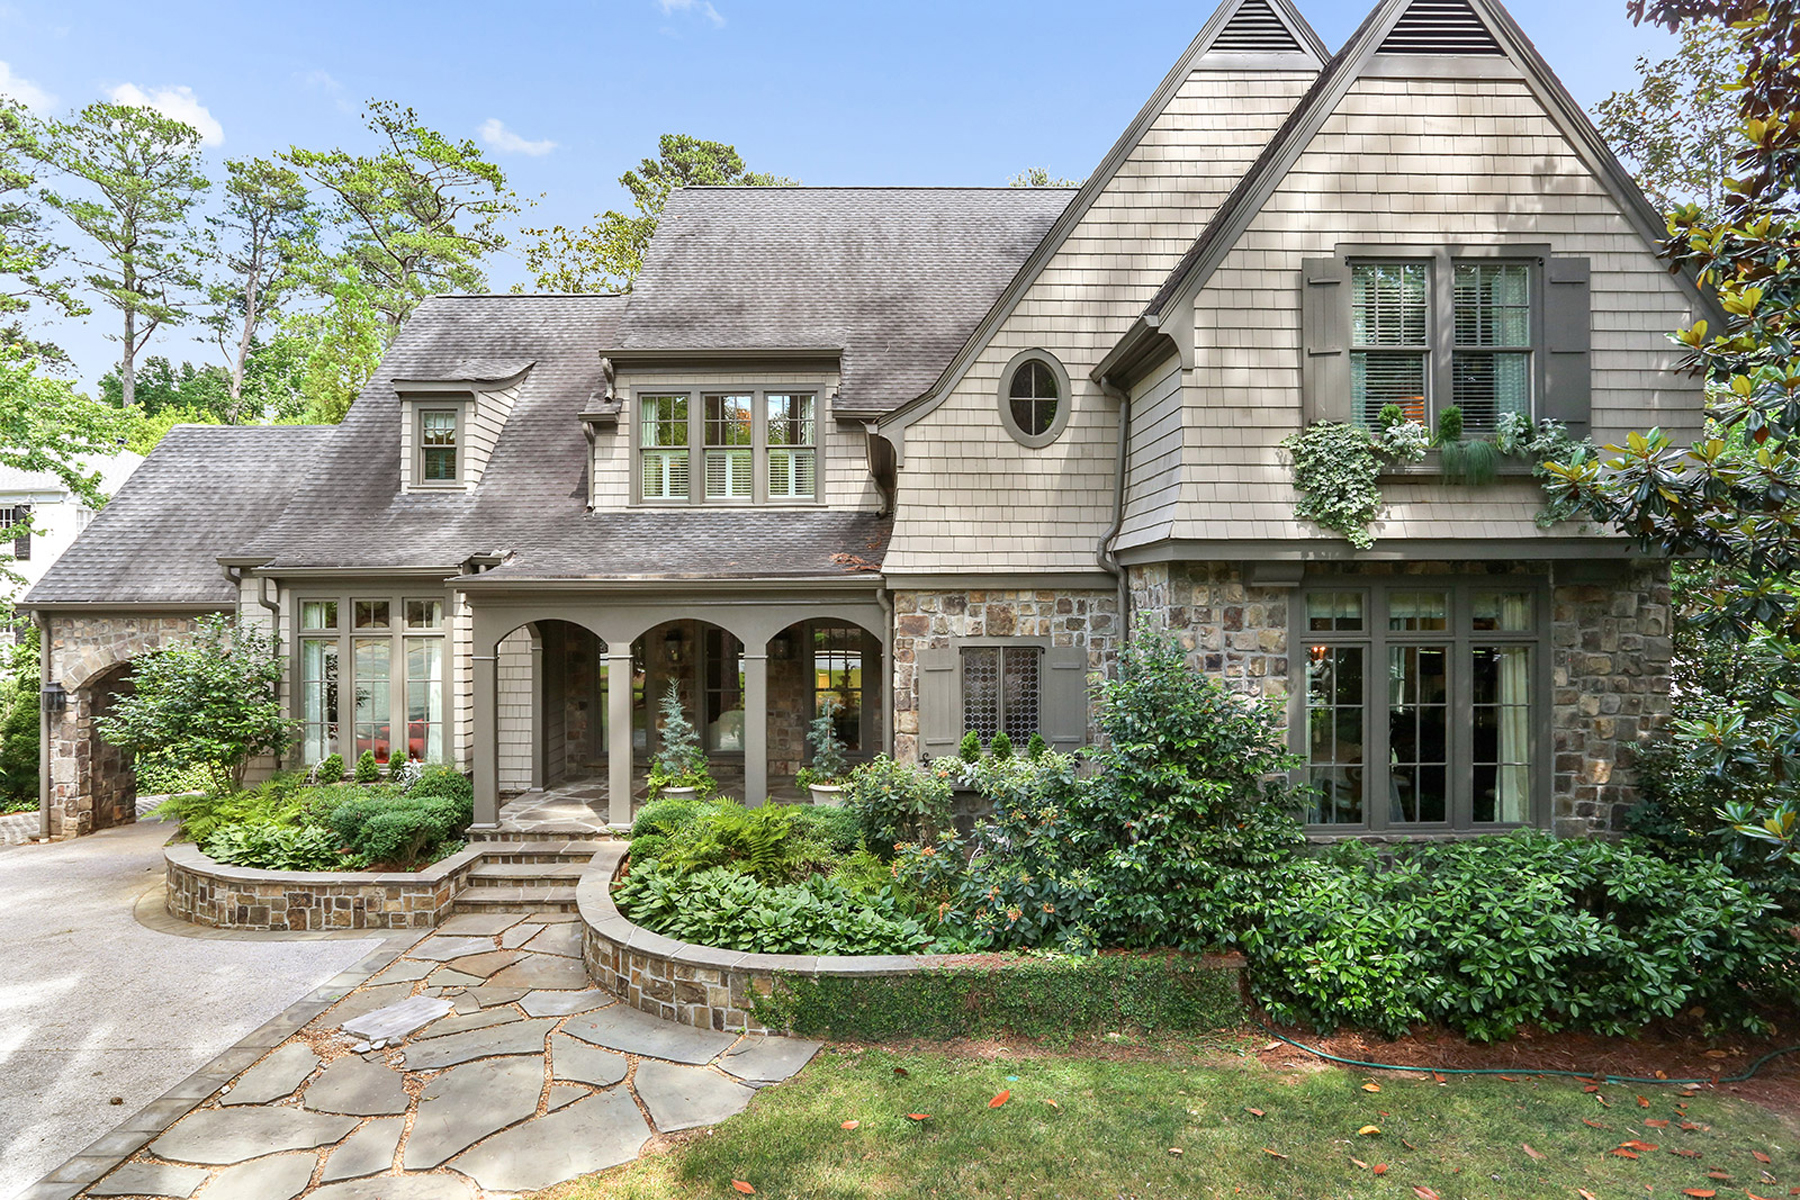 Single Family Home for Sale at Immaculate Dutch Colonial Style Home In The Heart Of Buckhead 3303 Habersham Road NW Buckhead, Atlanta, Georgia, 30305 United States